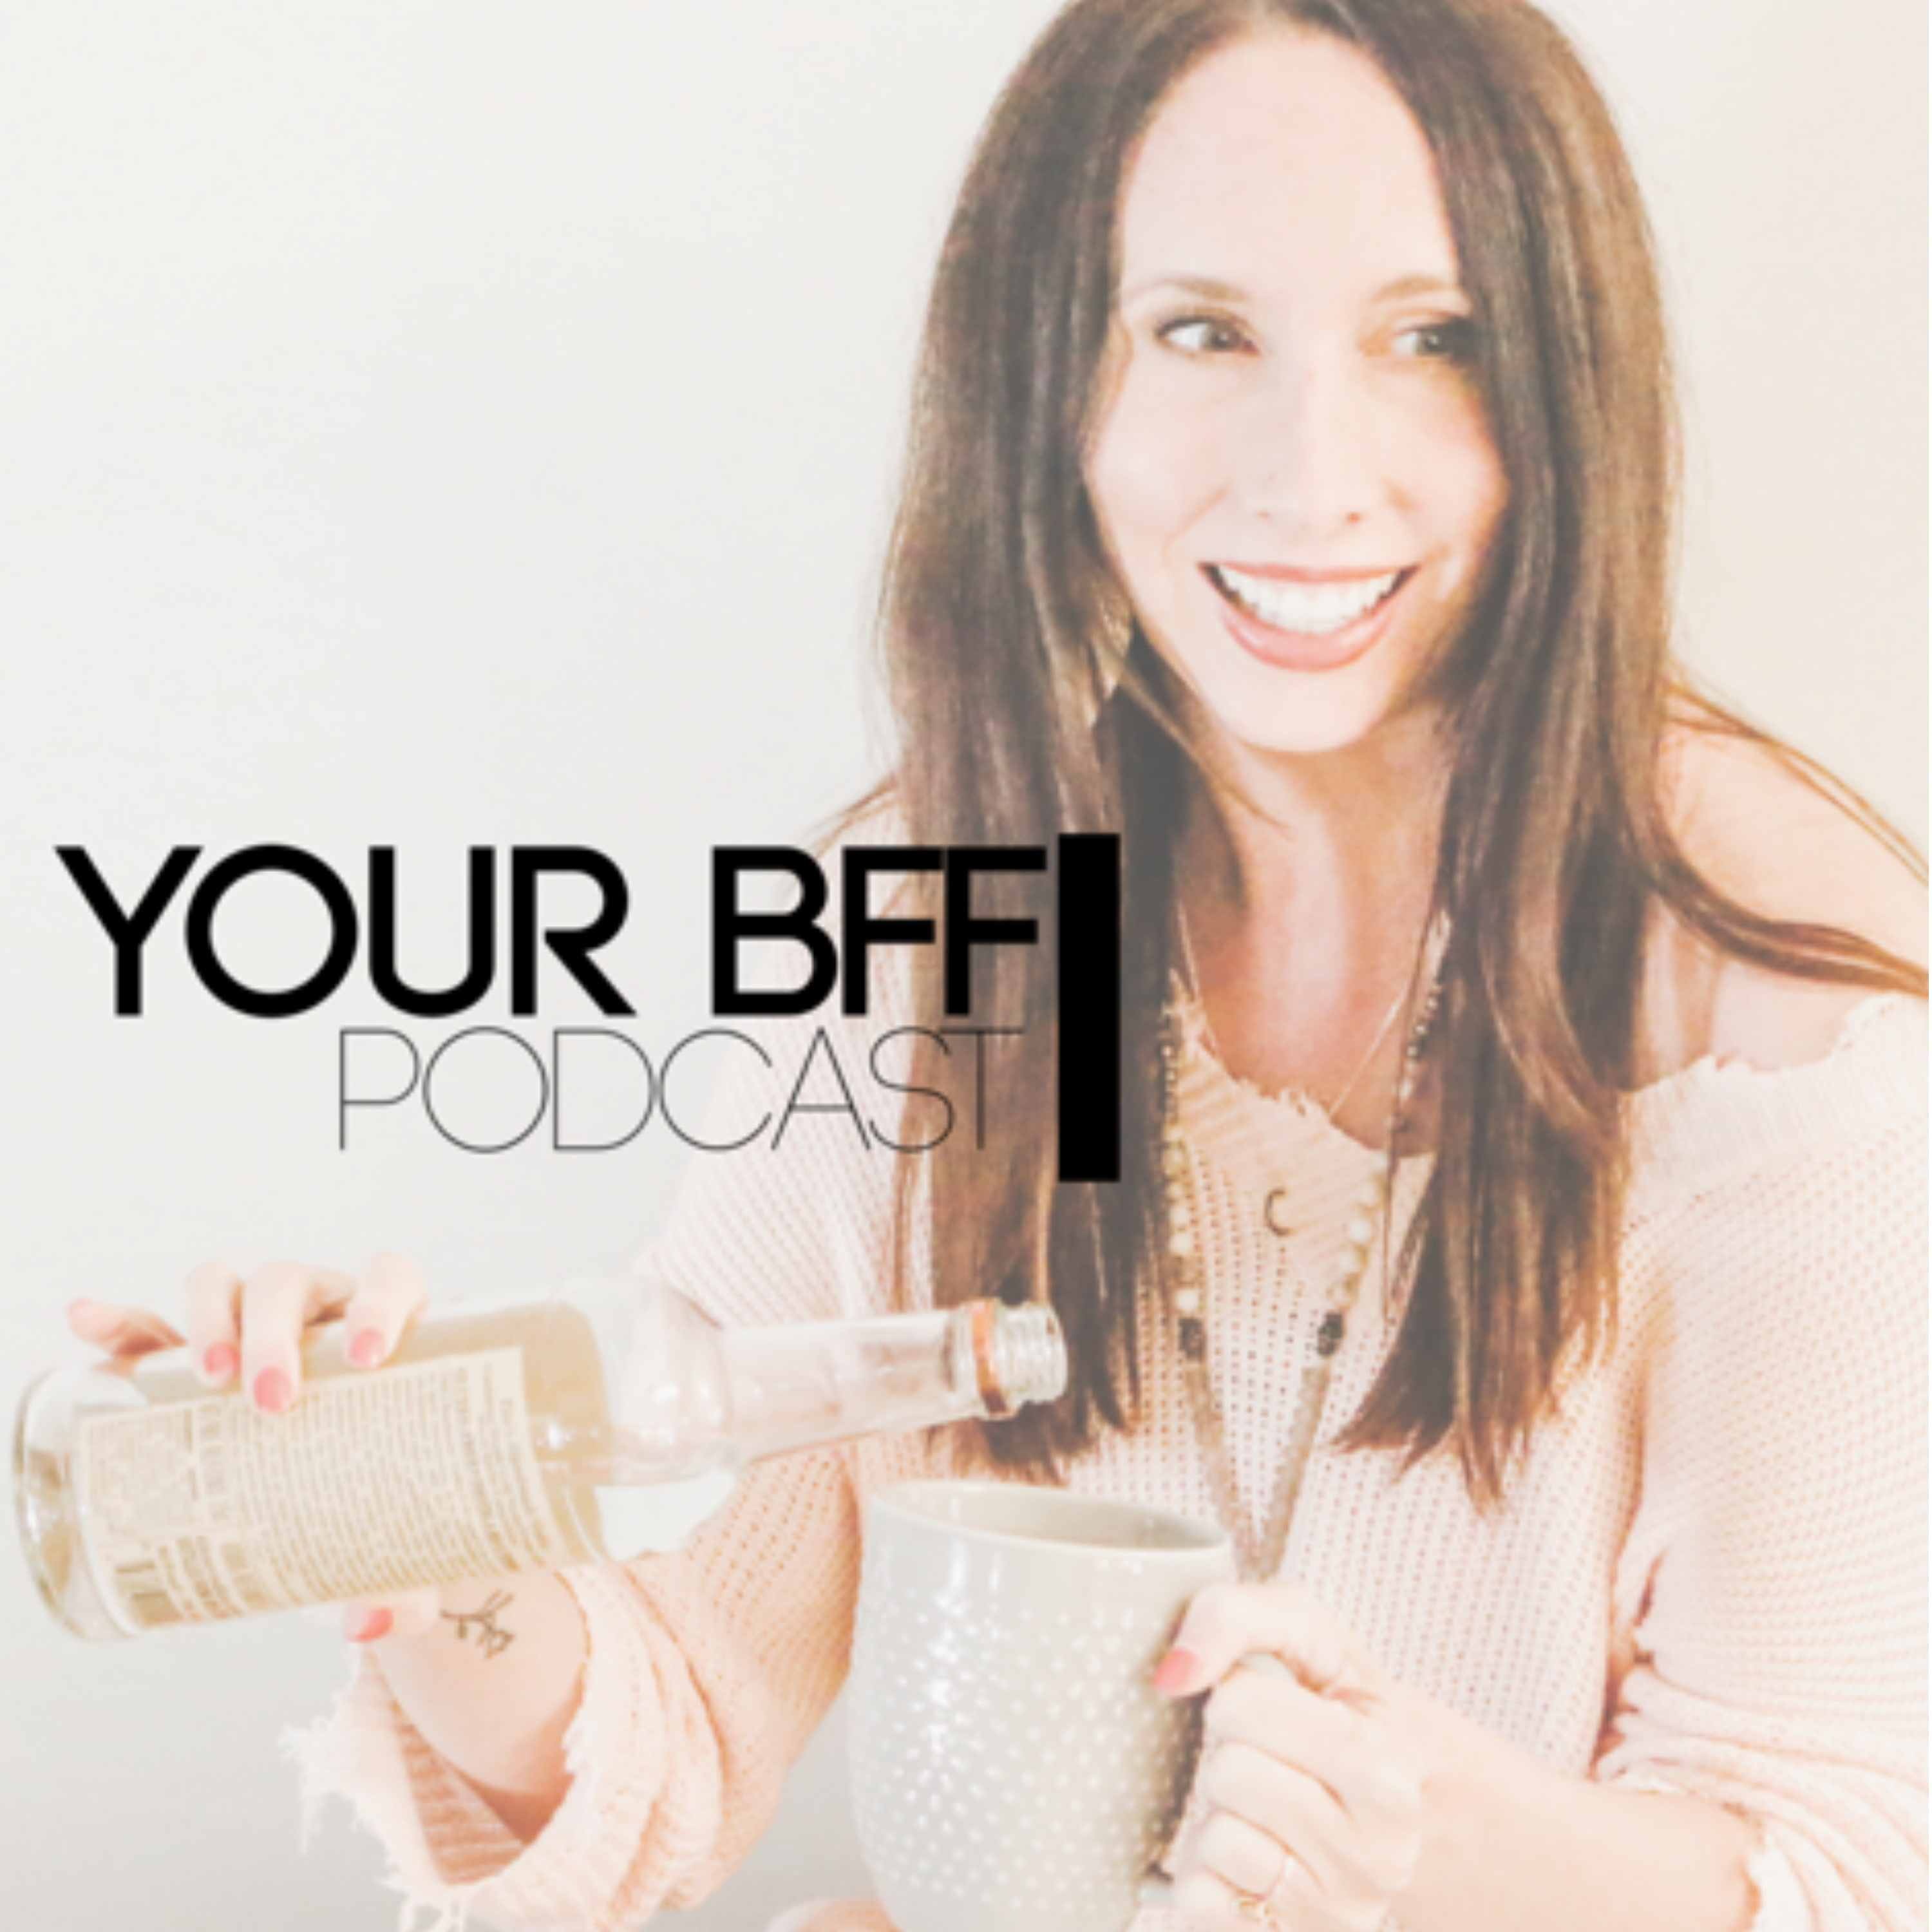 Your BFF Podcast show art